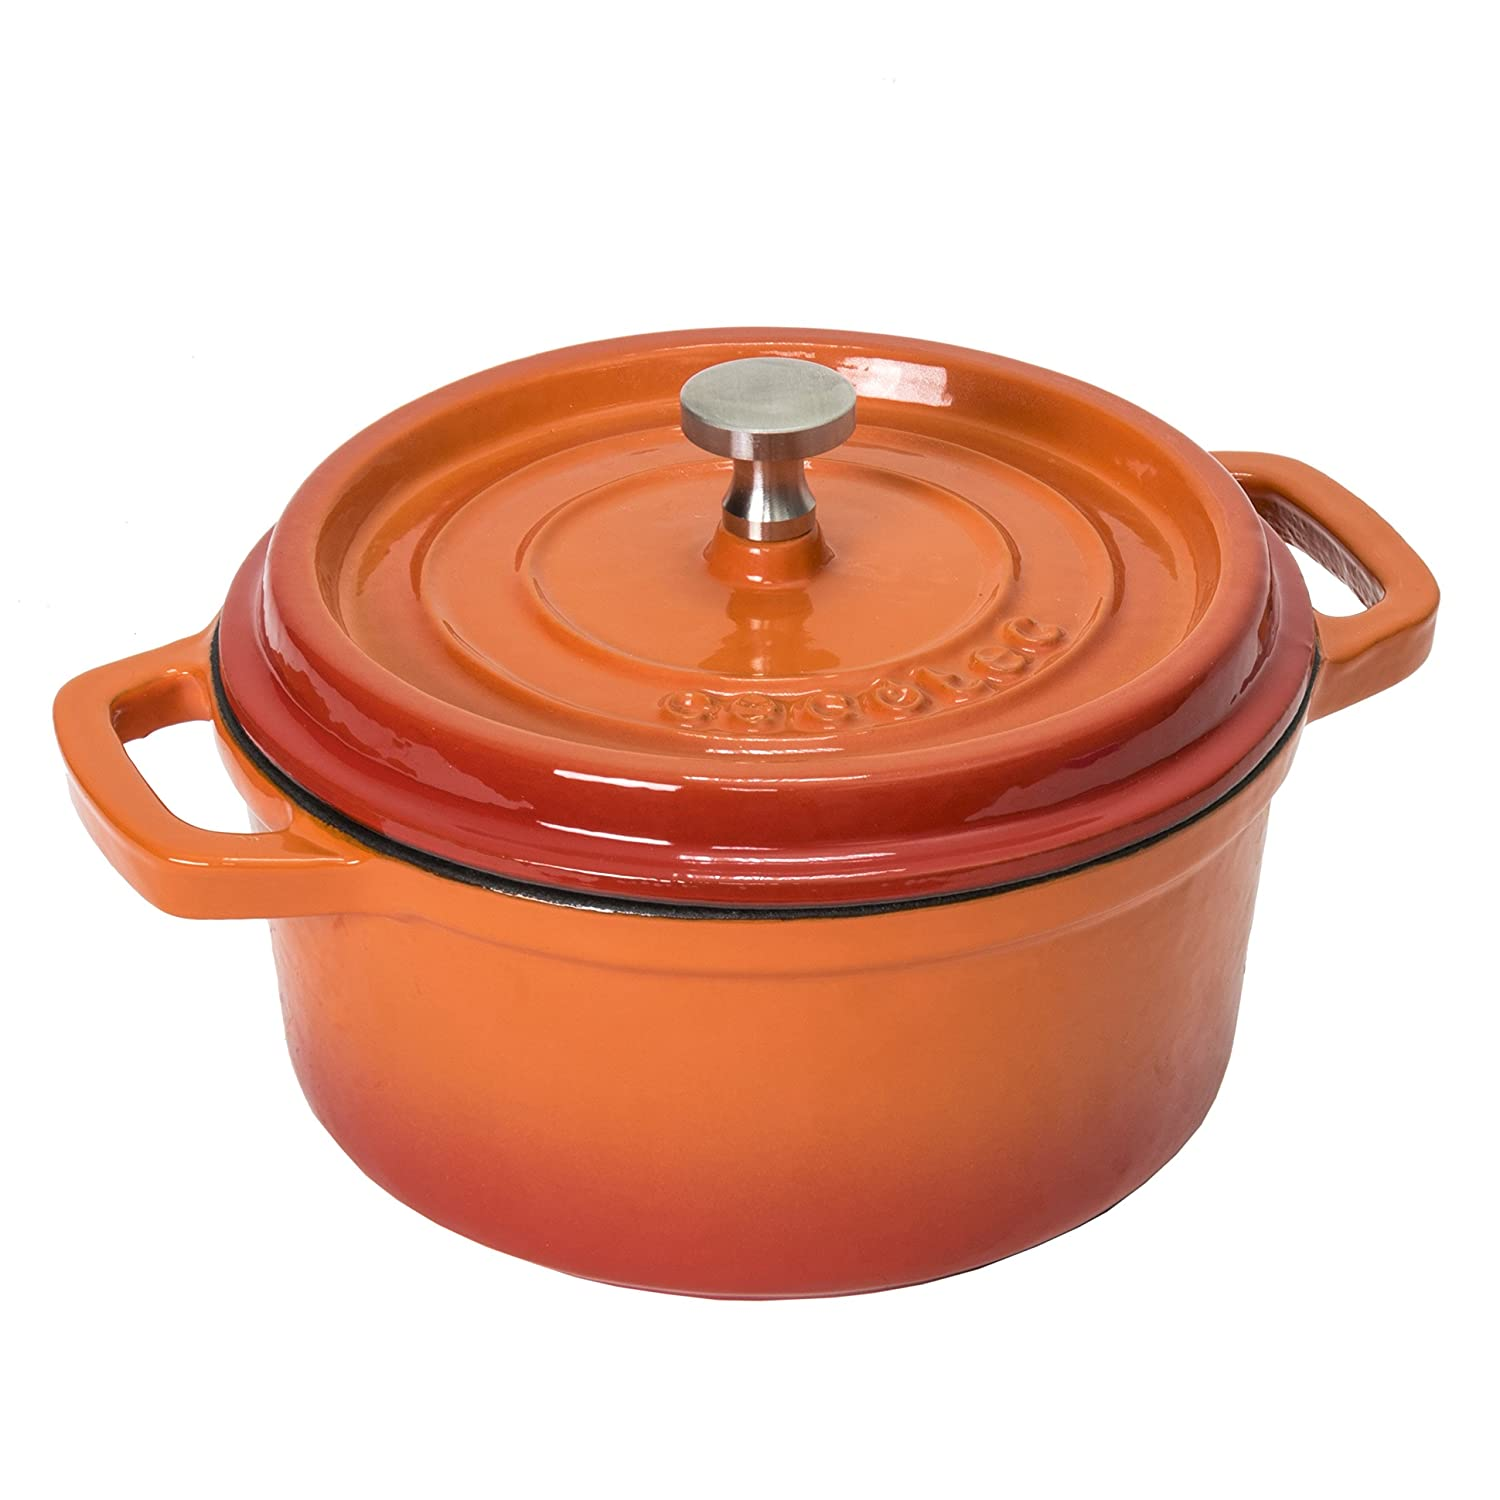 Cecotec Round Cocotte - Cast-Iron Casserole Pan with Stainless Steel Knob - 24 cm, for 5-6 People - Several Colours Fire